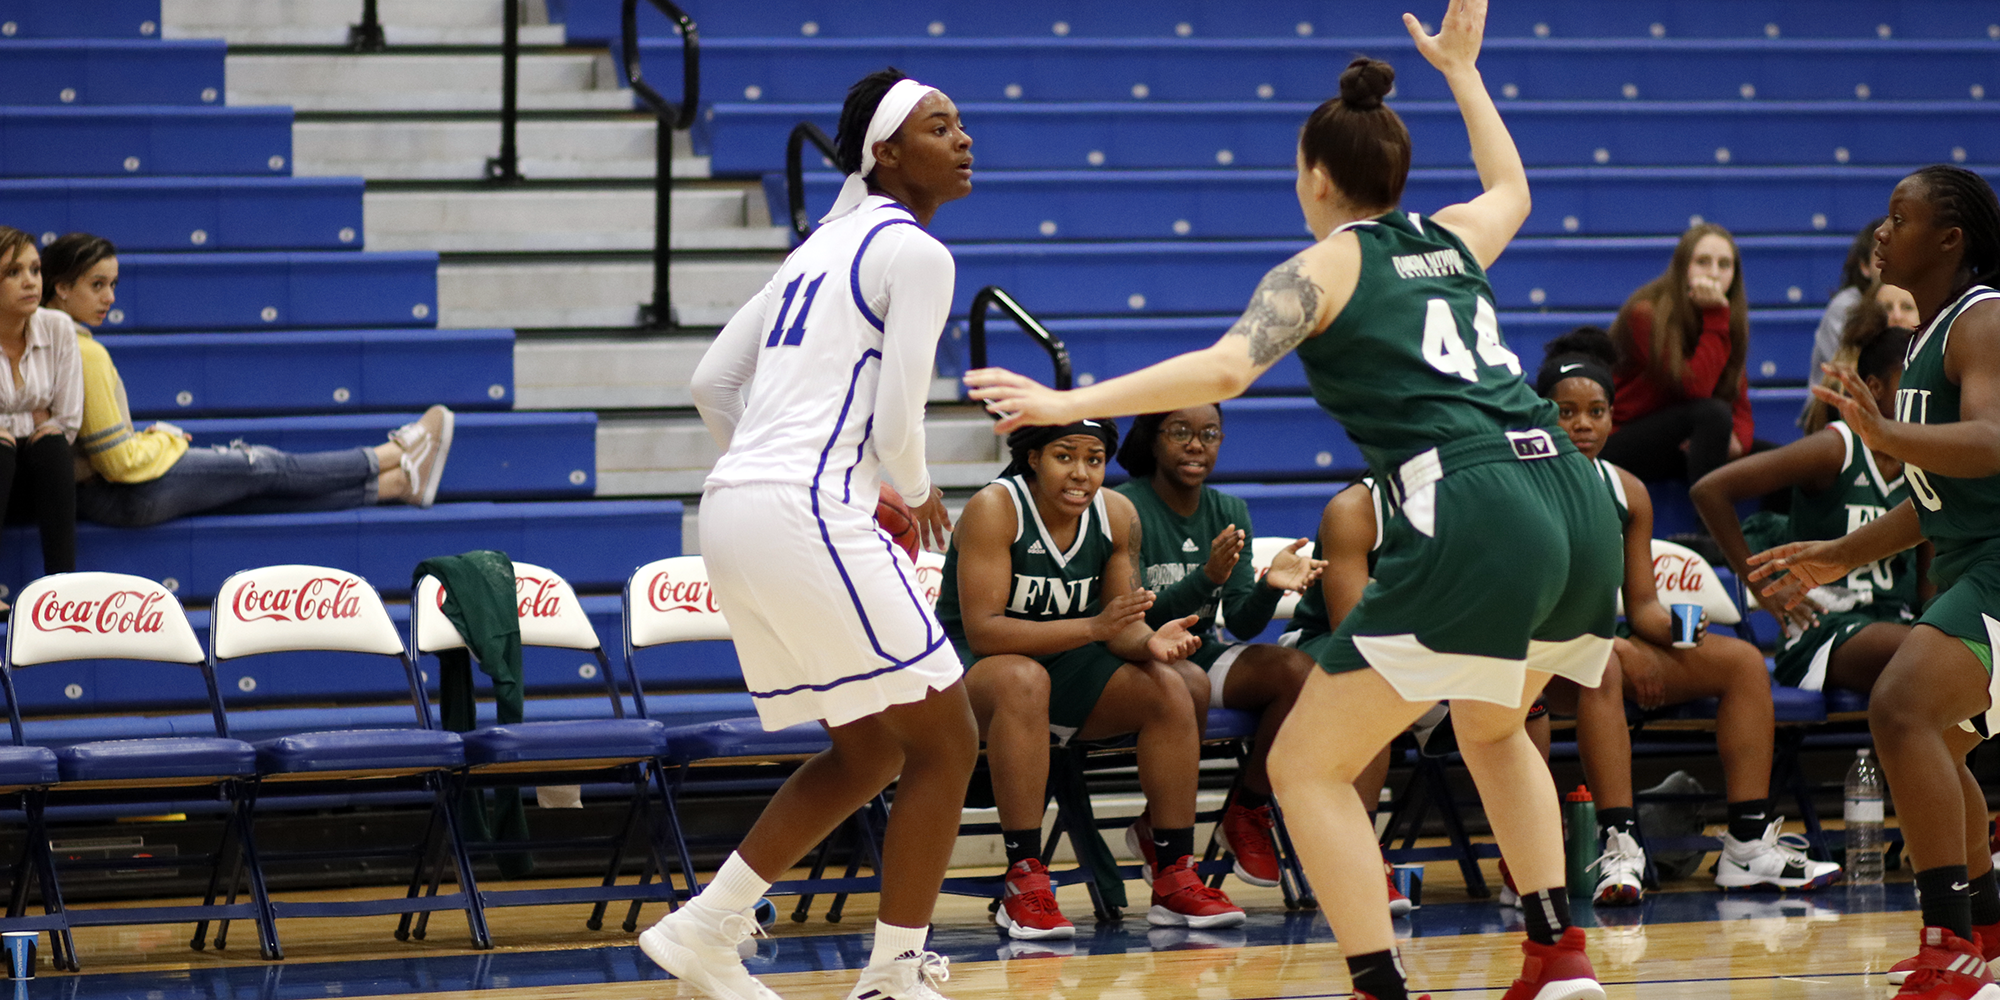 Strong Front Court Play Leads Women's Basketball to Narrow Victory